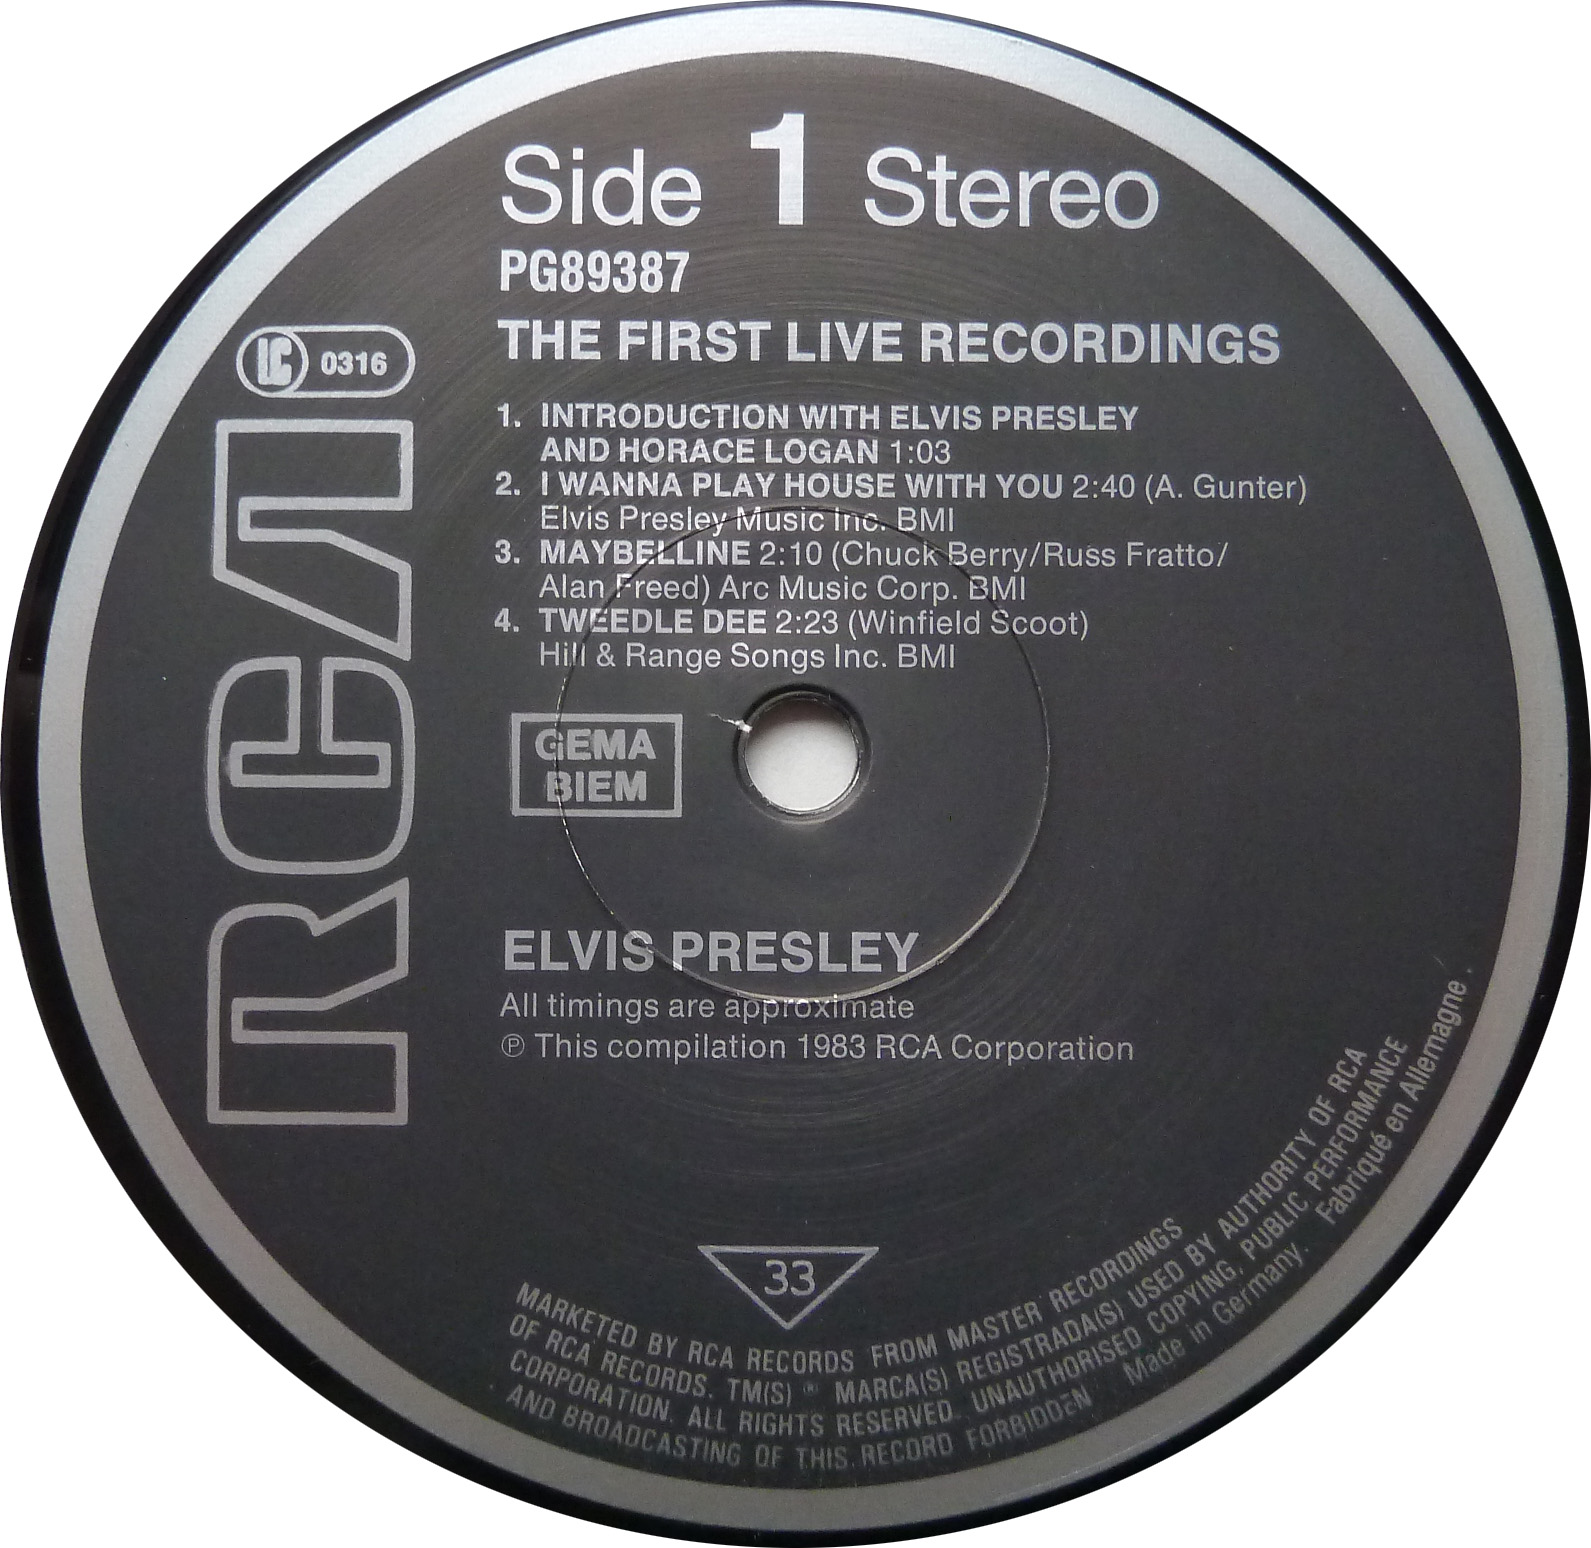 ELVIS: THE FIRST LIVE RECORDINGS Firstliverec05_84seit21qo9